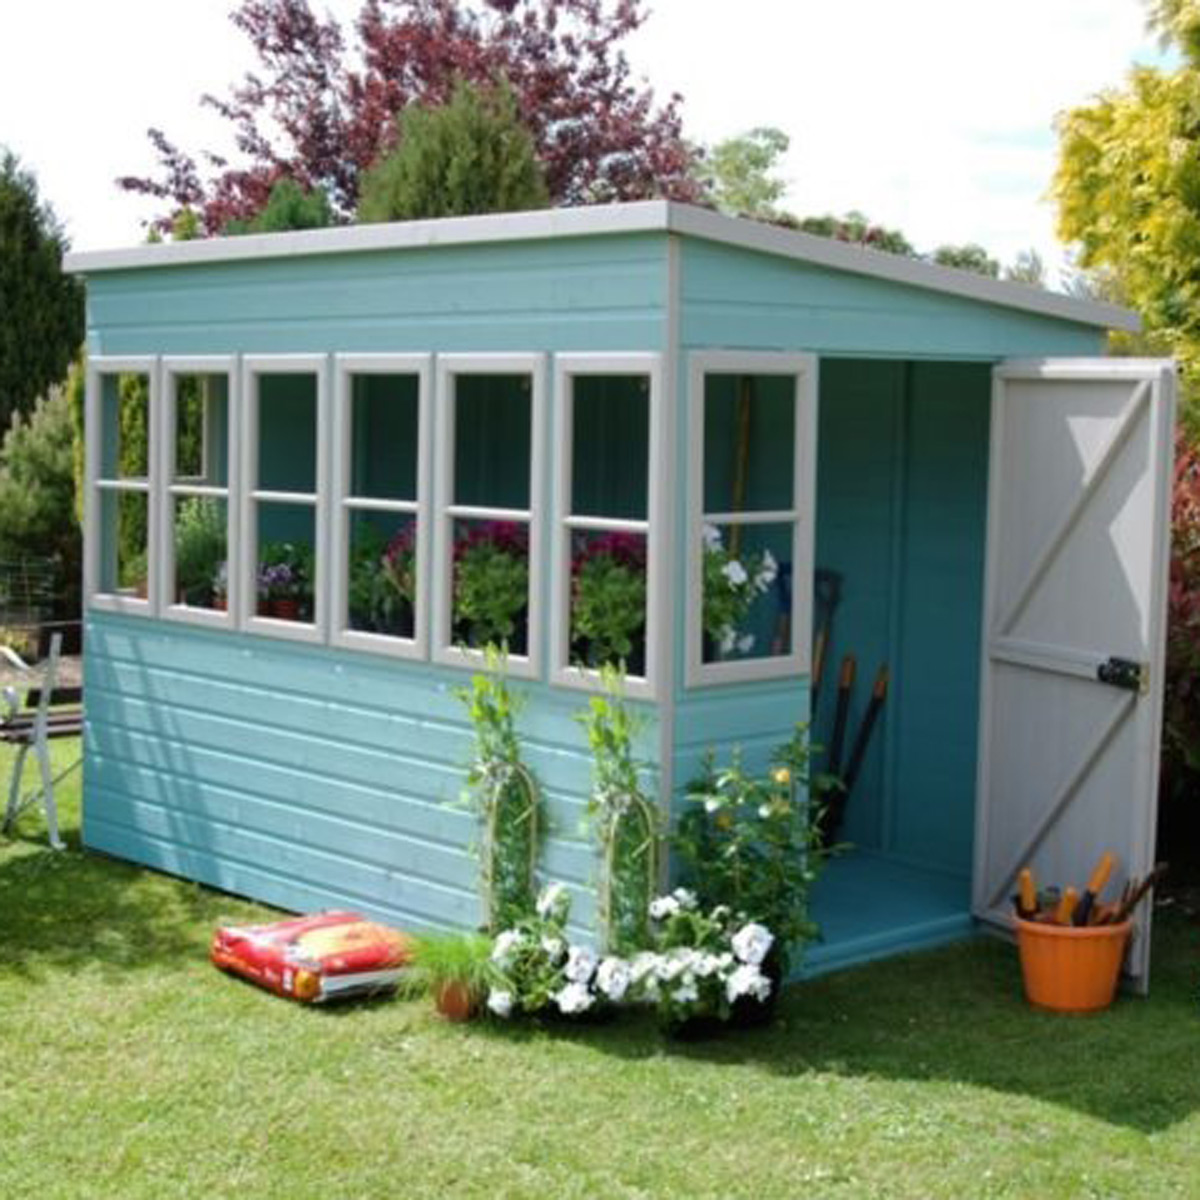 8 of the best garden sheds gardening accessories home for Best small garden sheds